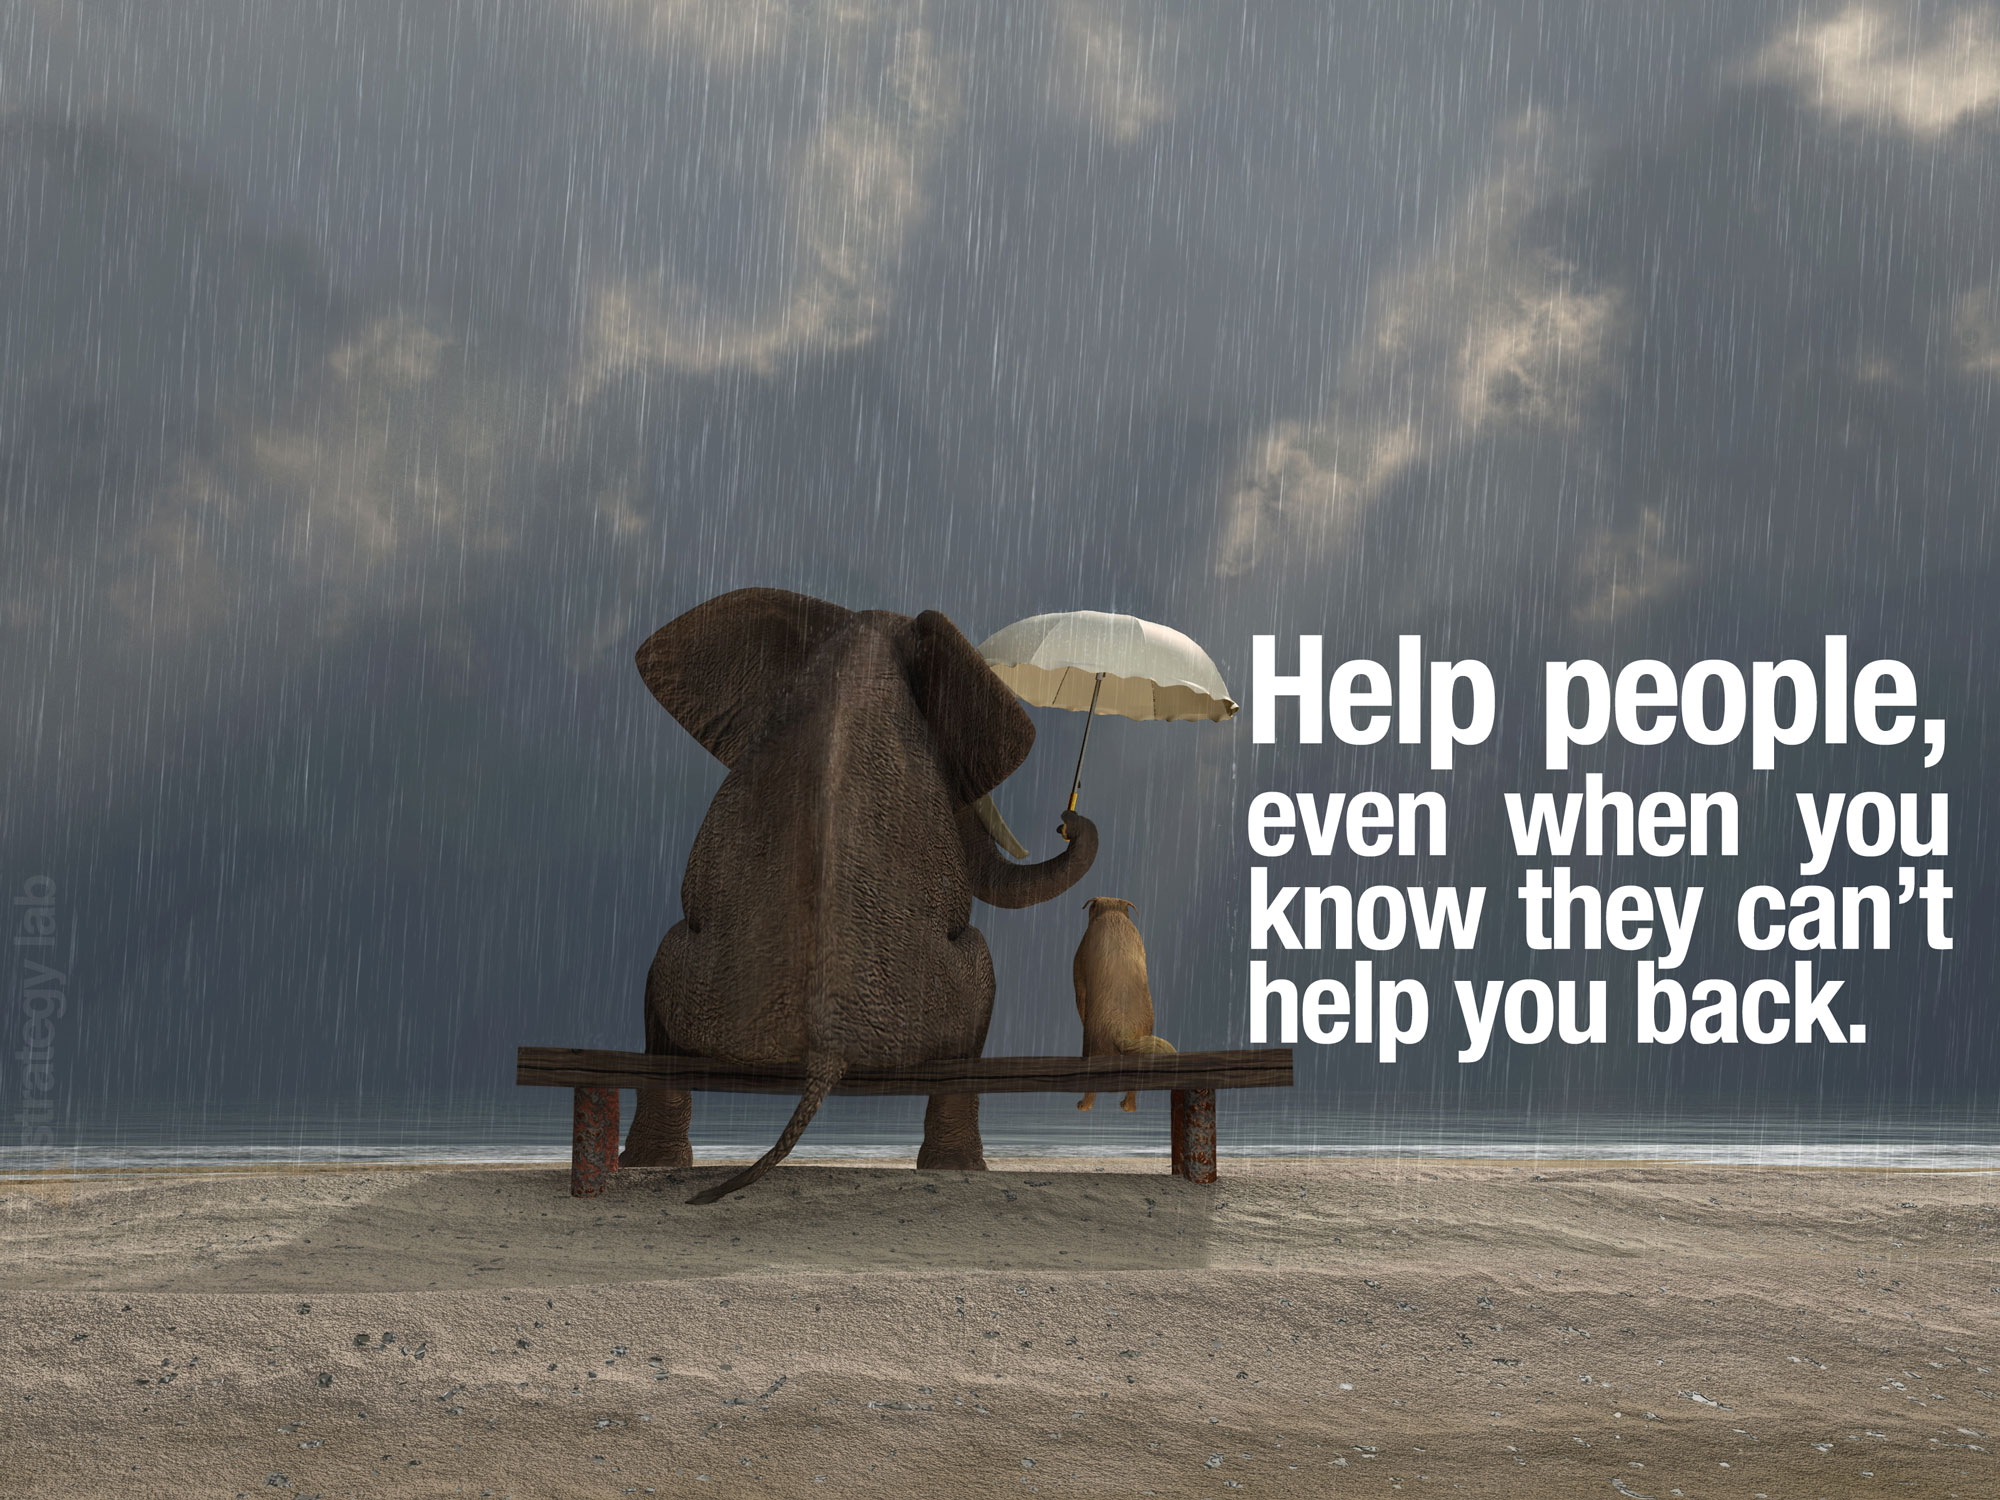 Help-people-even-when-you-know-they-cant-help-you-back